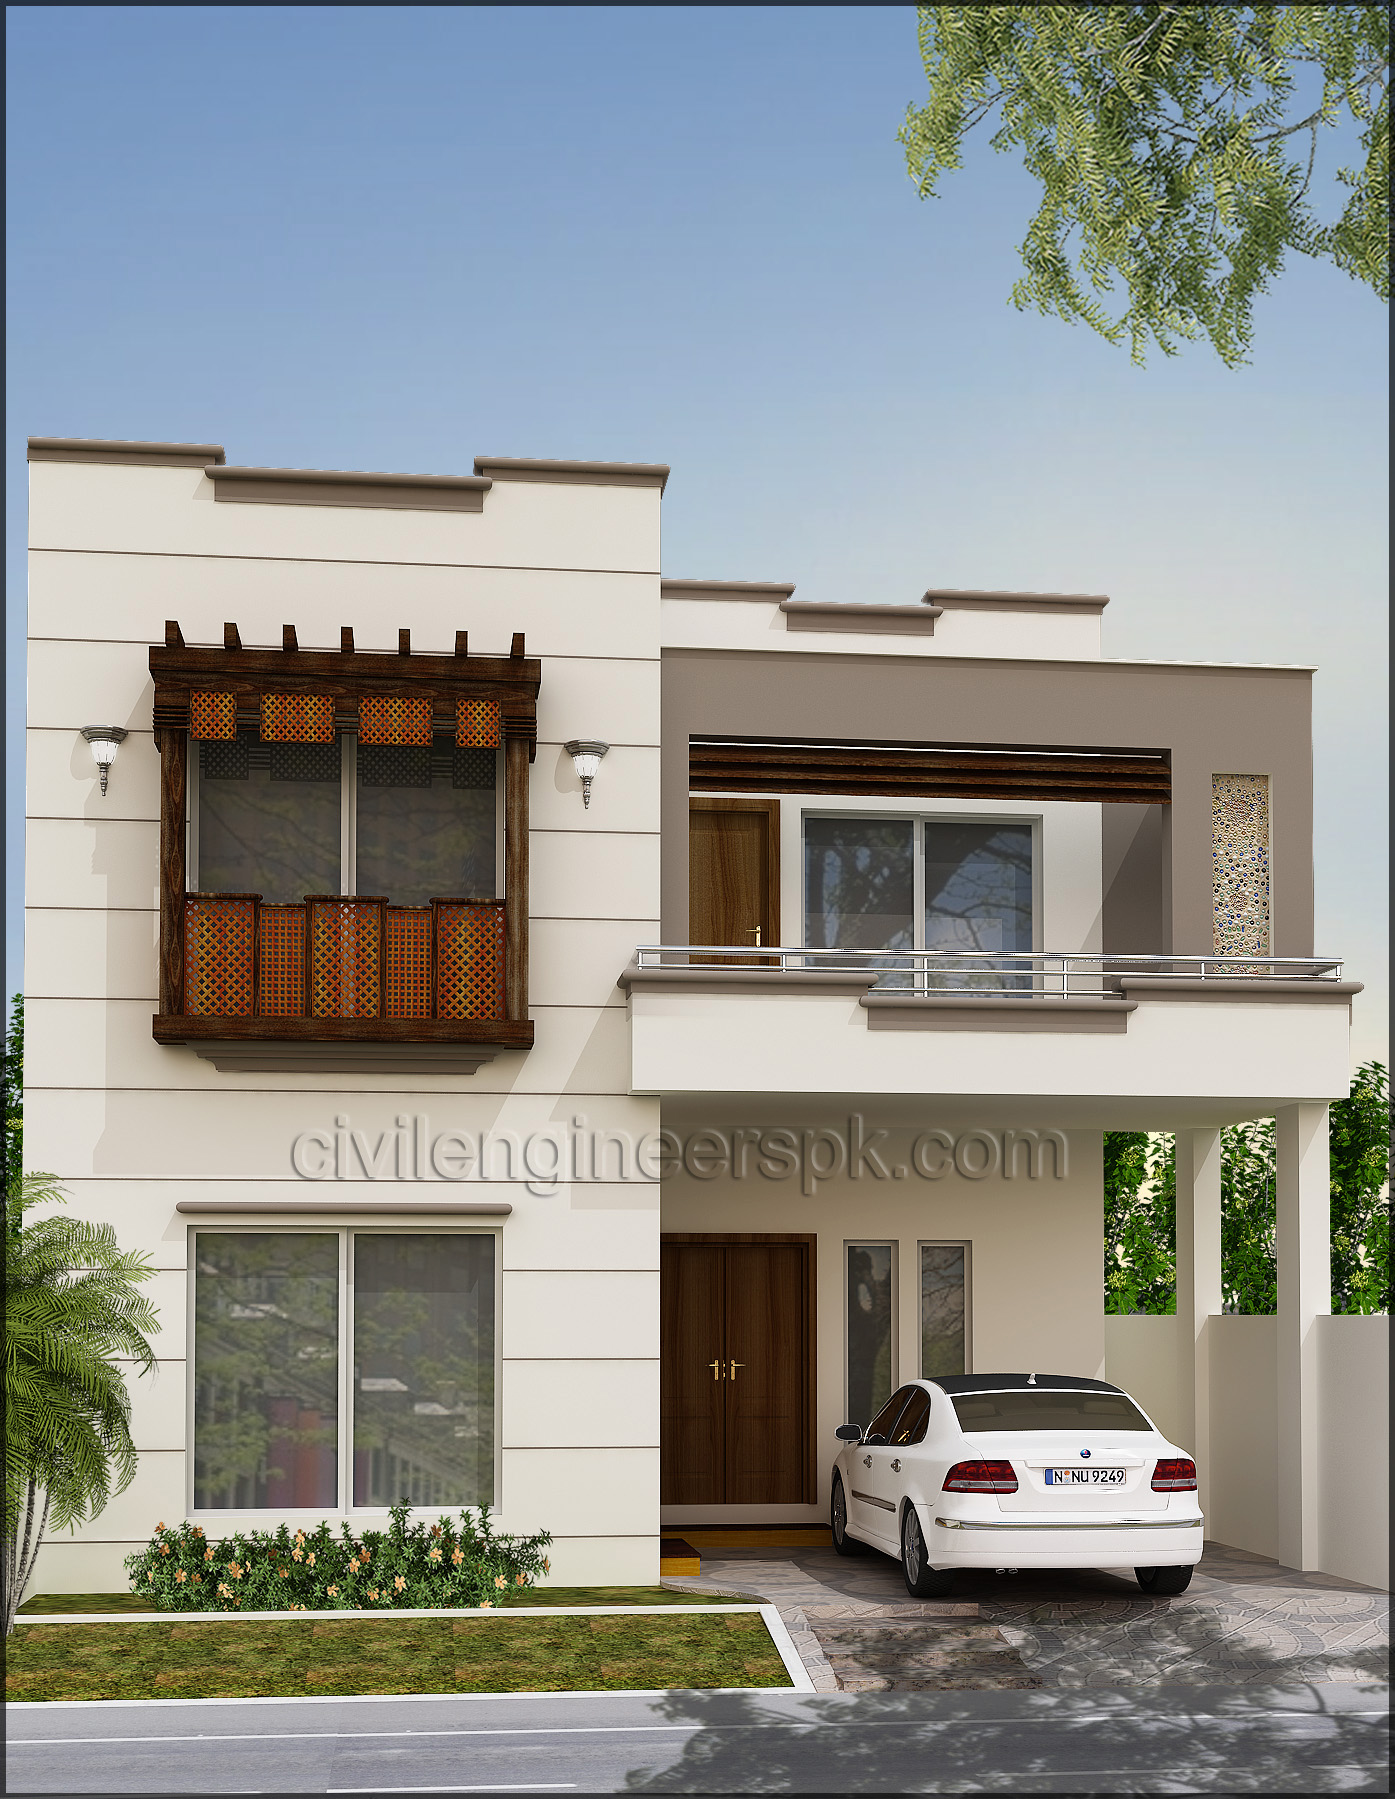 Front Elevation Of Home : Front views civil engineers pk